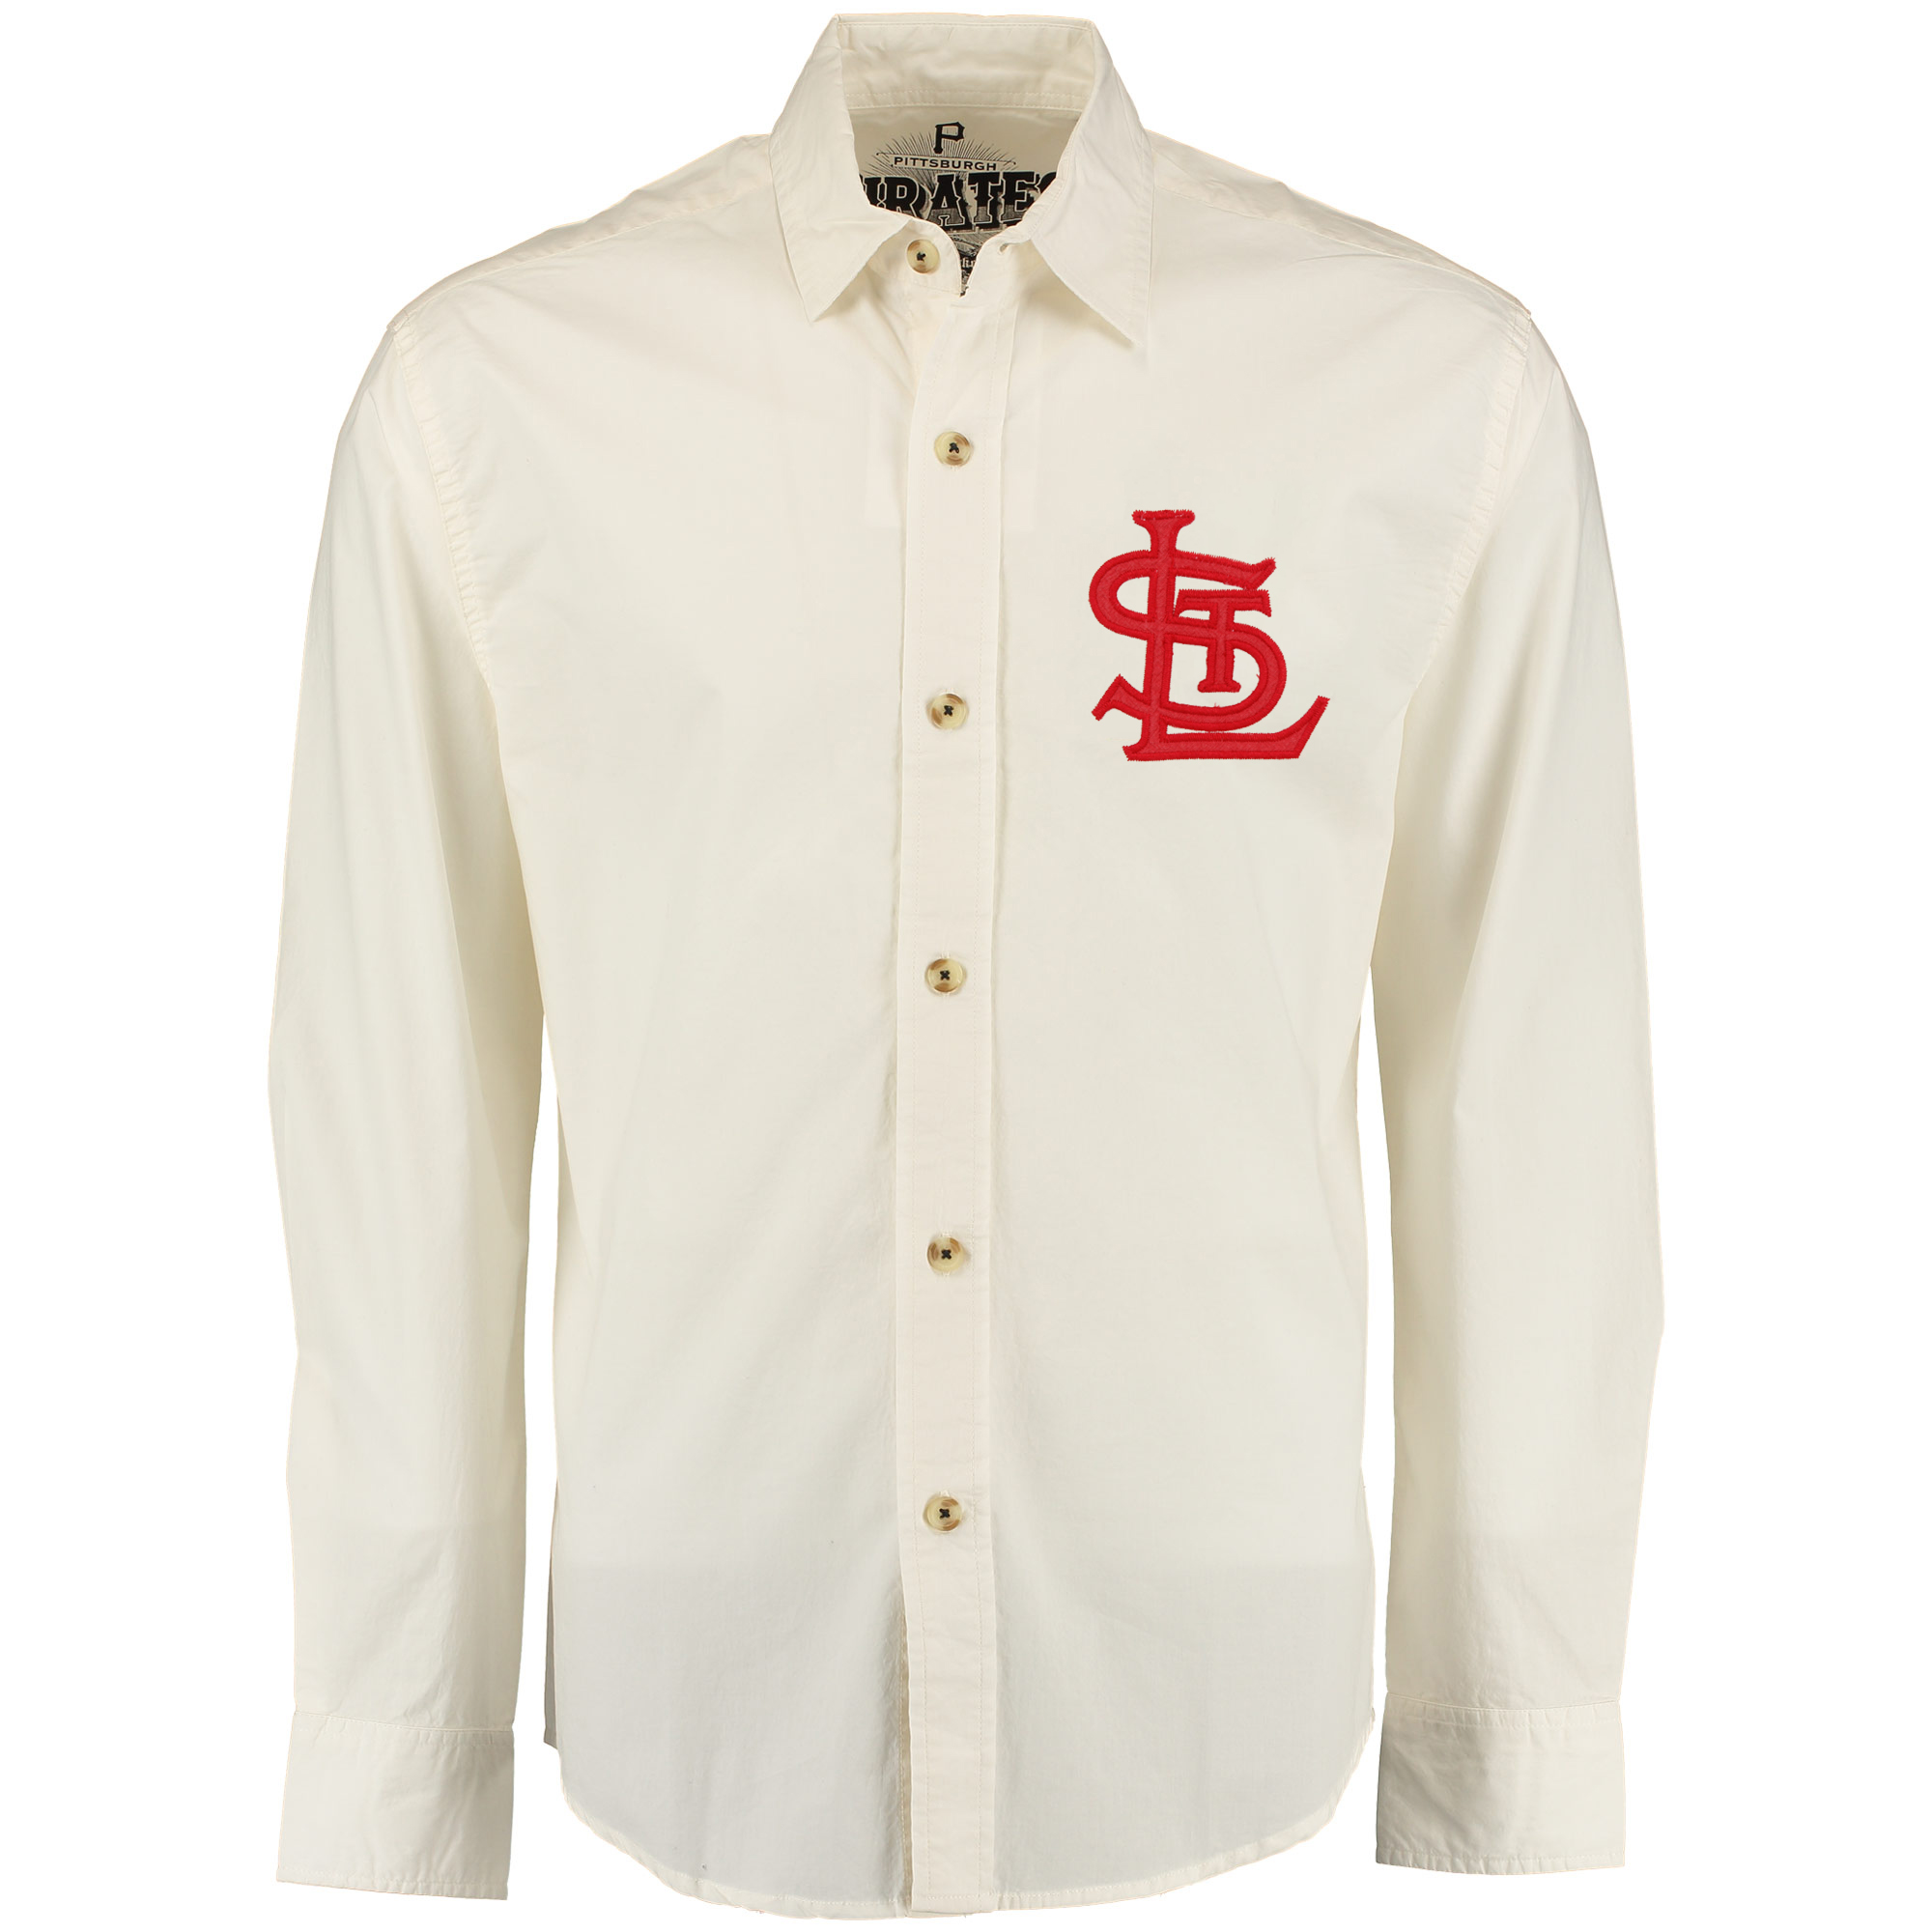 St. Louis Cardinals Red Jacket Knickerbocker Woven Long Sleeve Button-Up Shirt - Natural